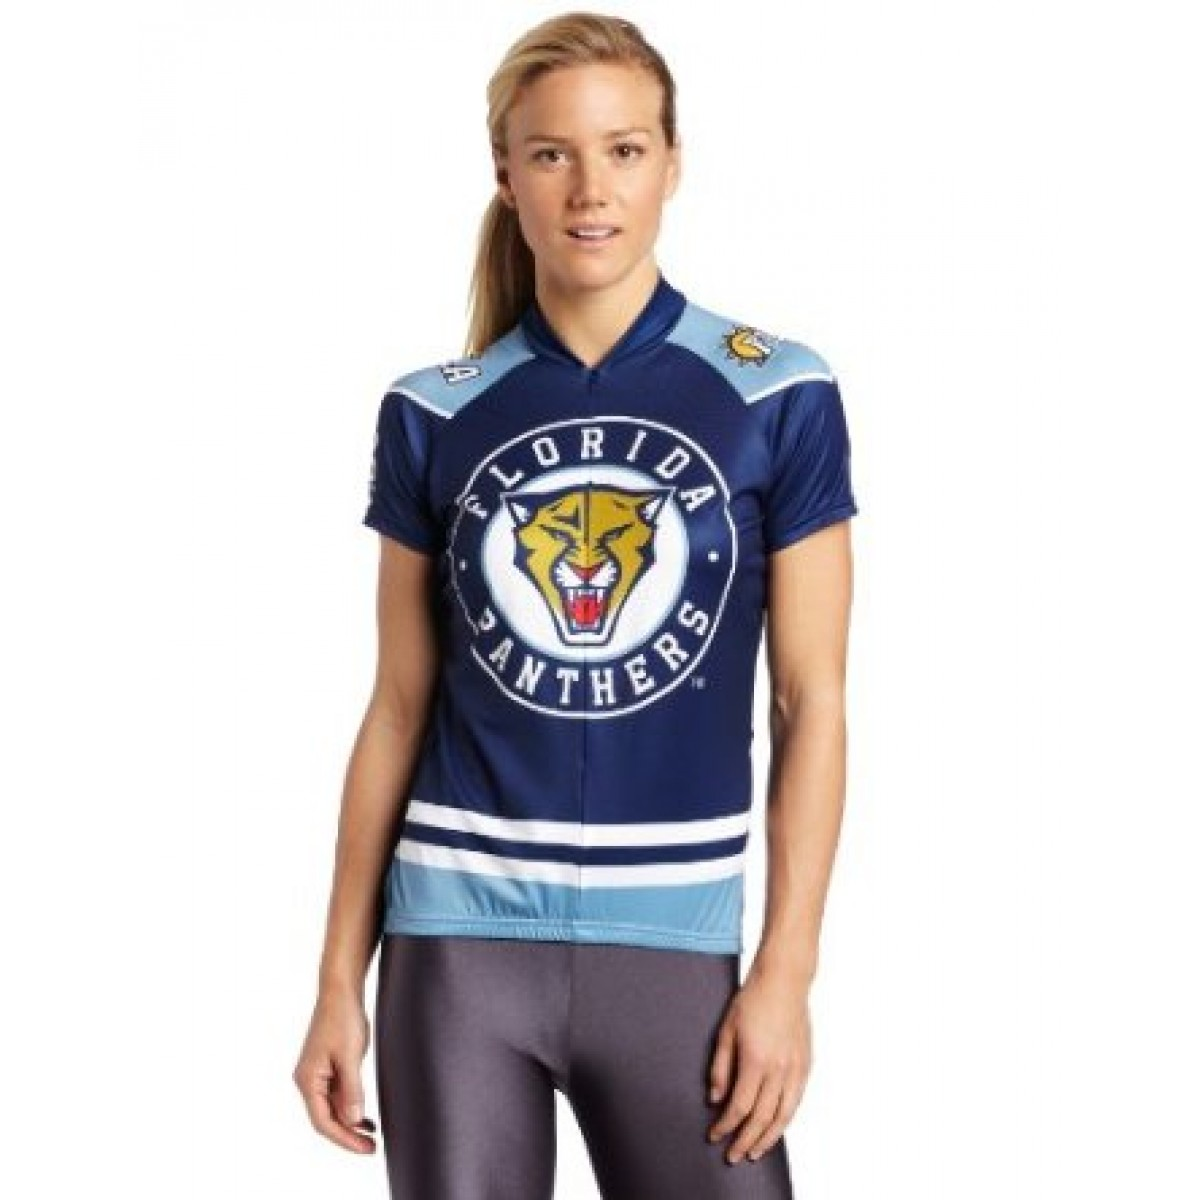 NHL Team Florida Panthers Cycling Jersey Short Sleeve